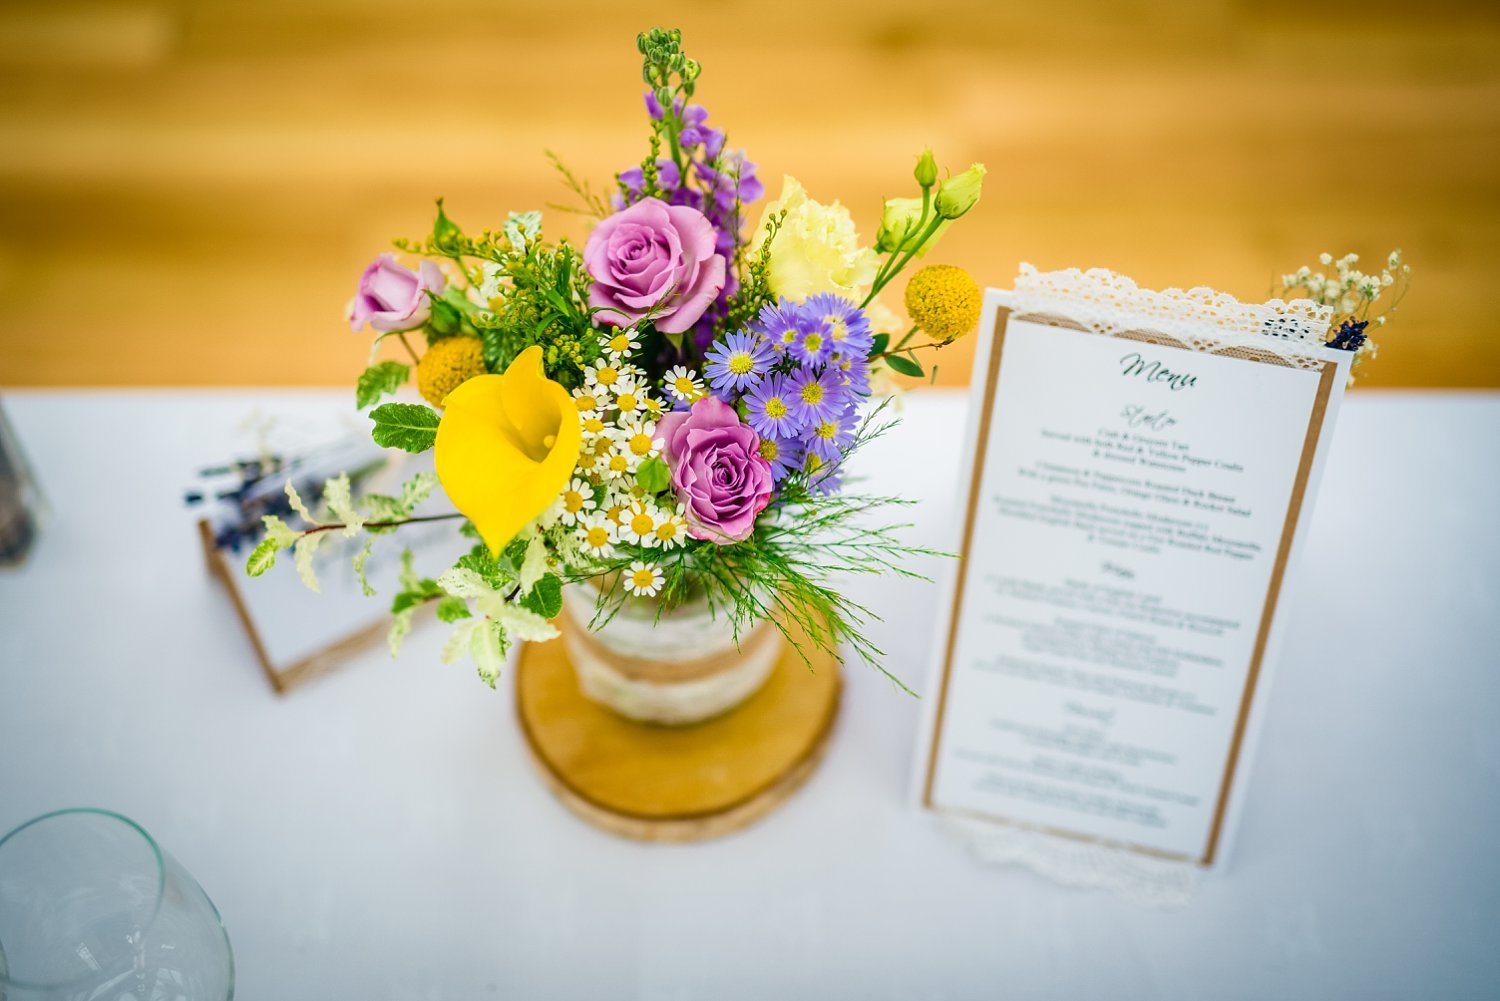 Fun-Filled wedding in Pembroke Lodge - flowers on the table